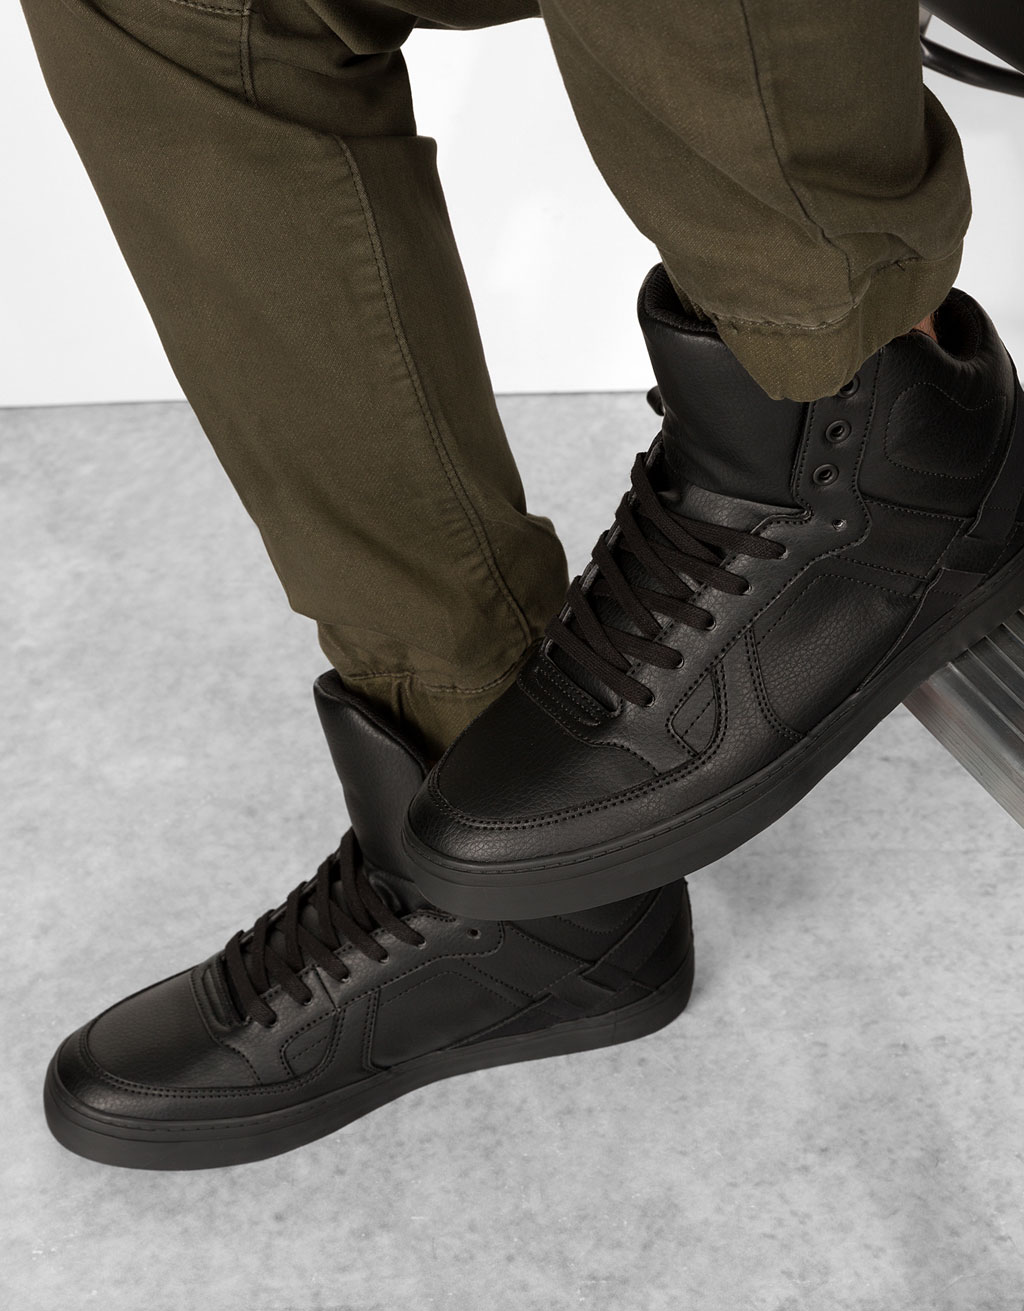 Men's contrast technical high tops